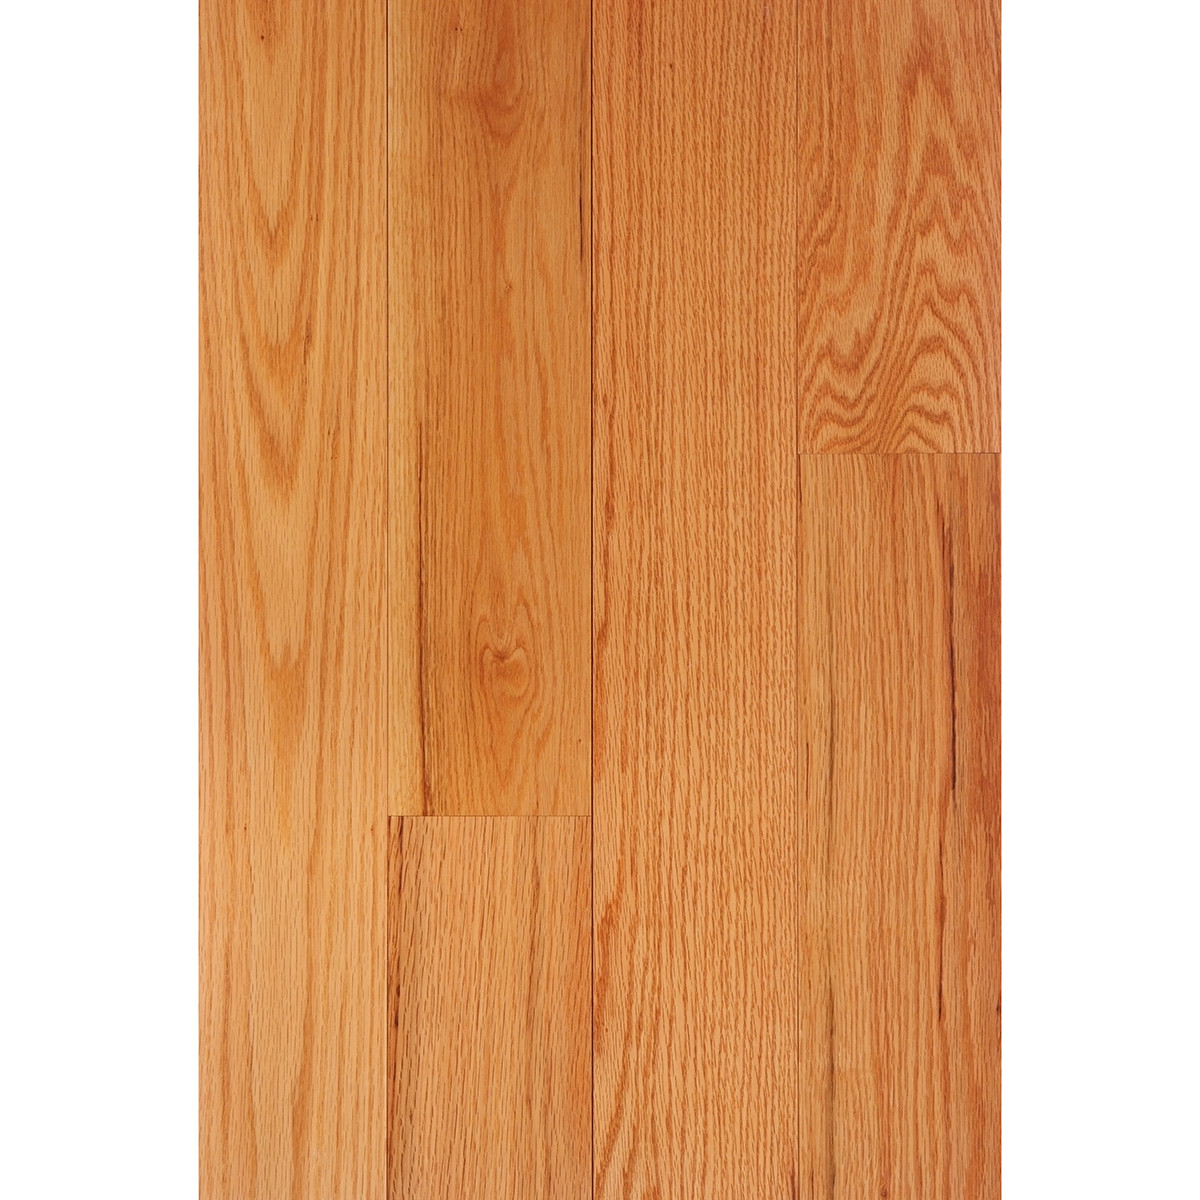 red oak hardwood flooring for sale of red oak 3 4 x 5 select grade flooring in other items in this category